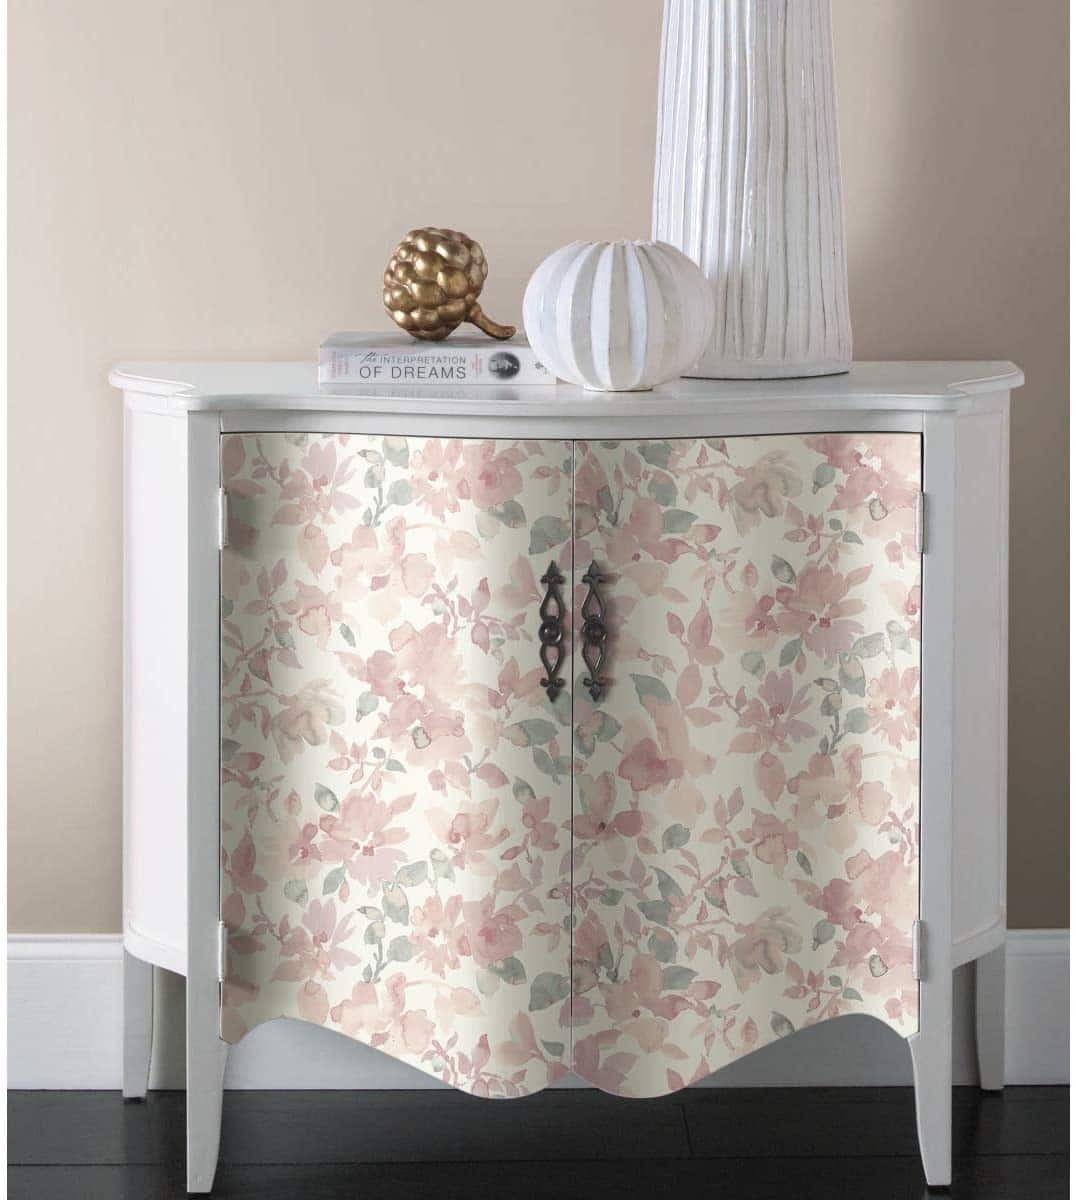 RoomMates Pink/Green Watercolor Floral Peel & Stick Removable Wallpaper $17.65 + FS w/ Walmart+ or Prime